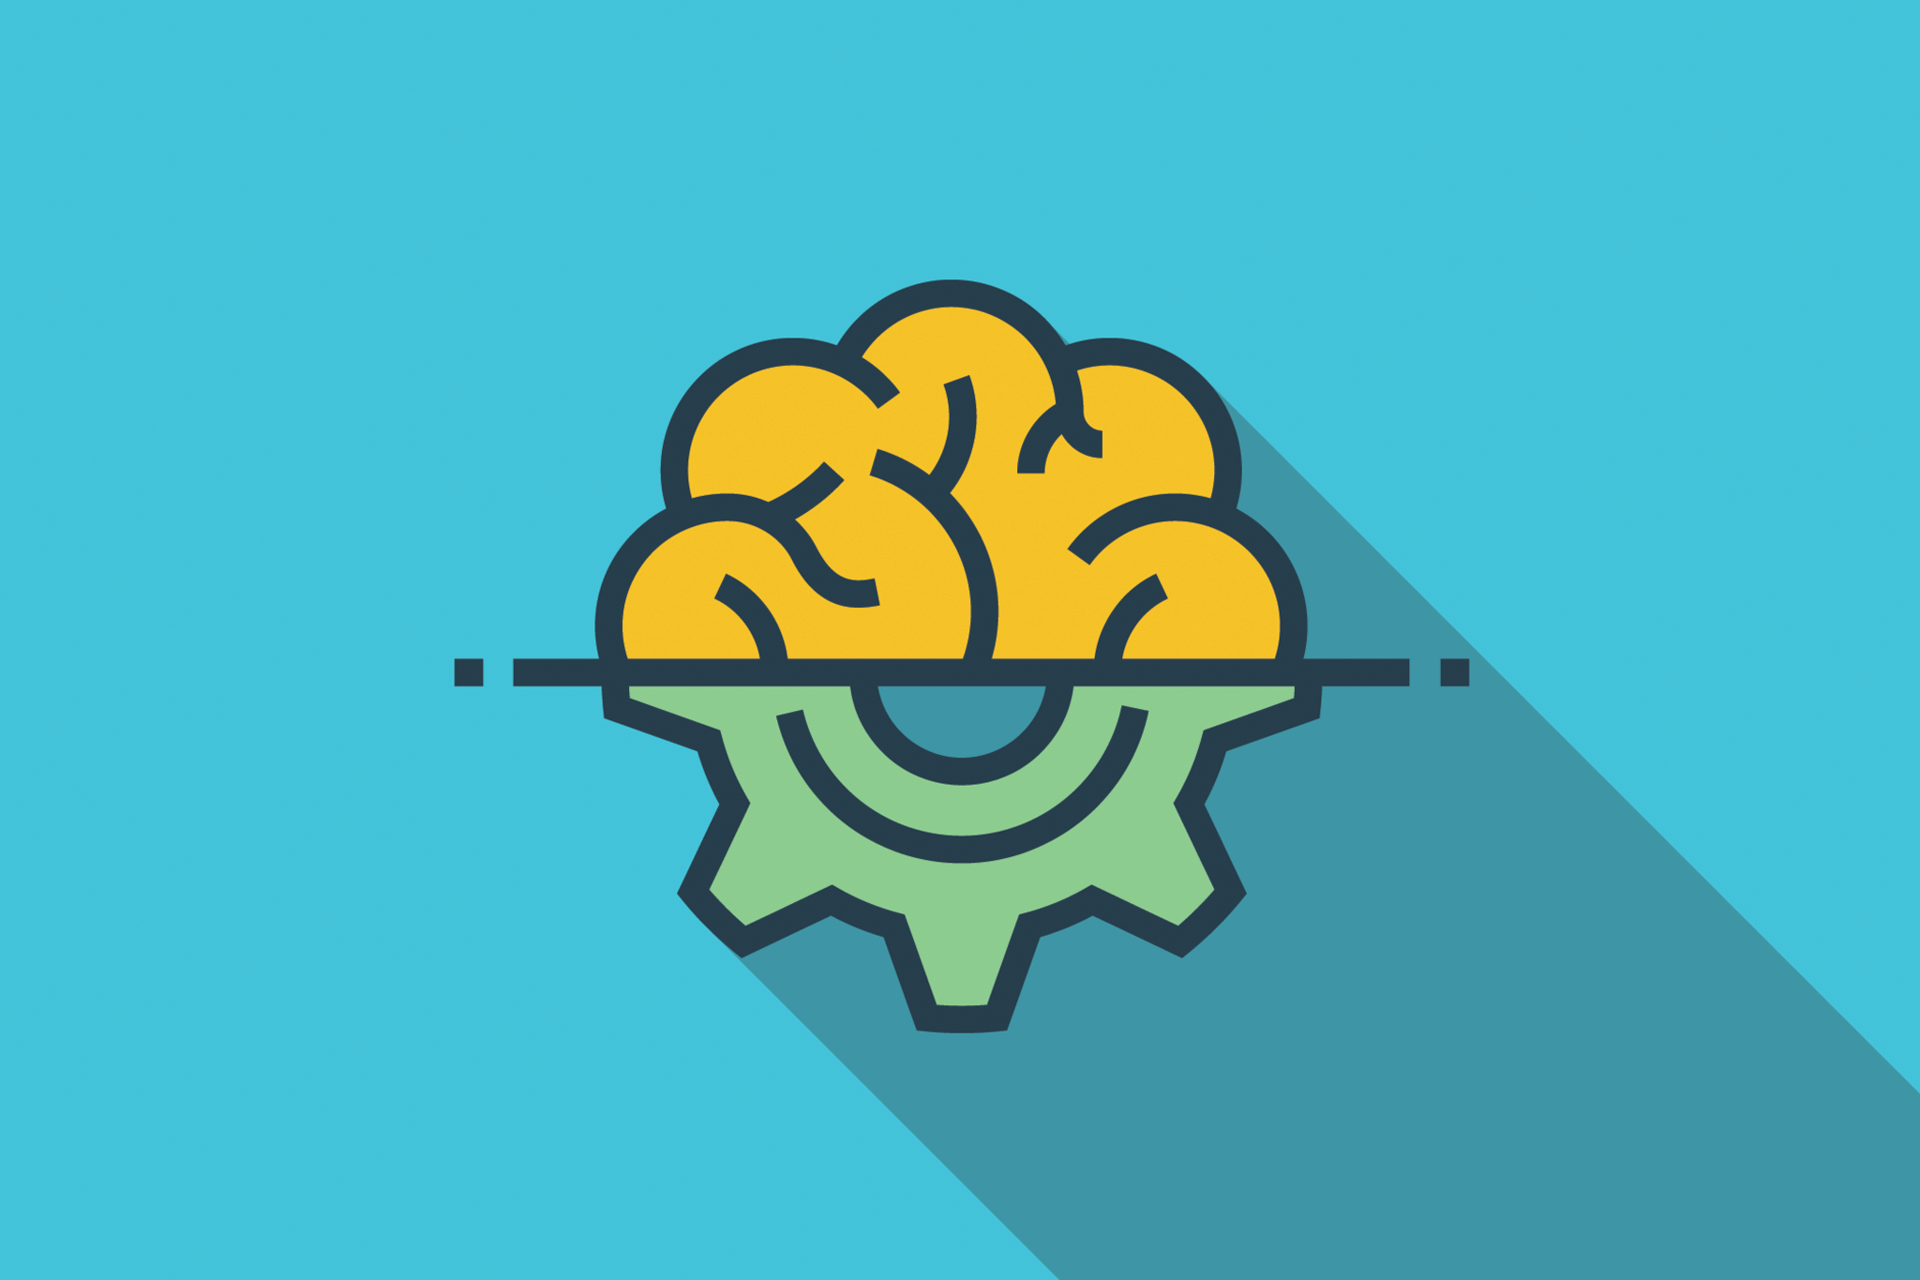 image of brain and cog